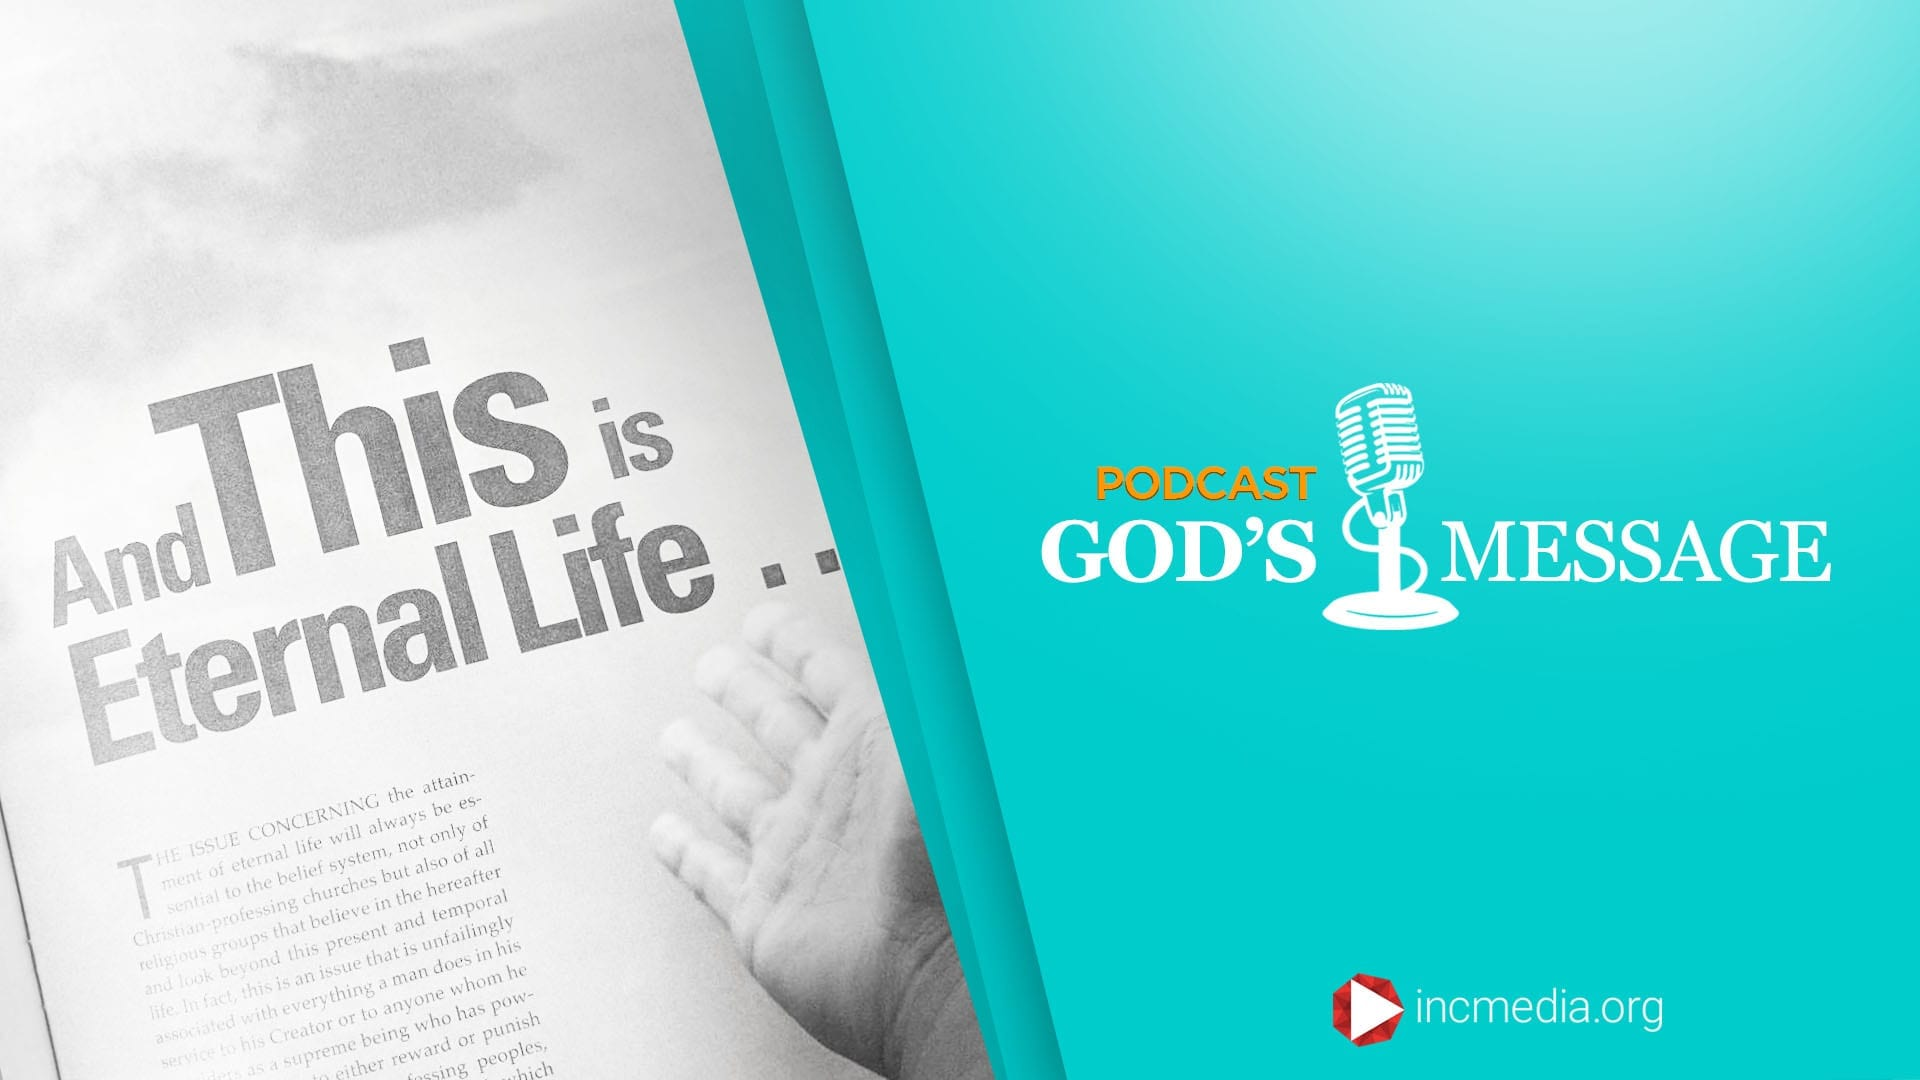 """God's Message Podcast background with """"And This is eternal life..."""" text"""